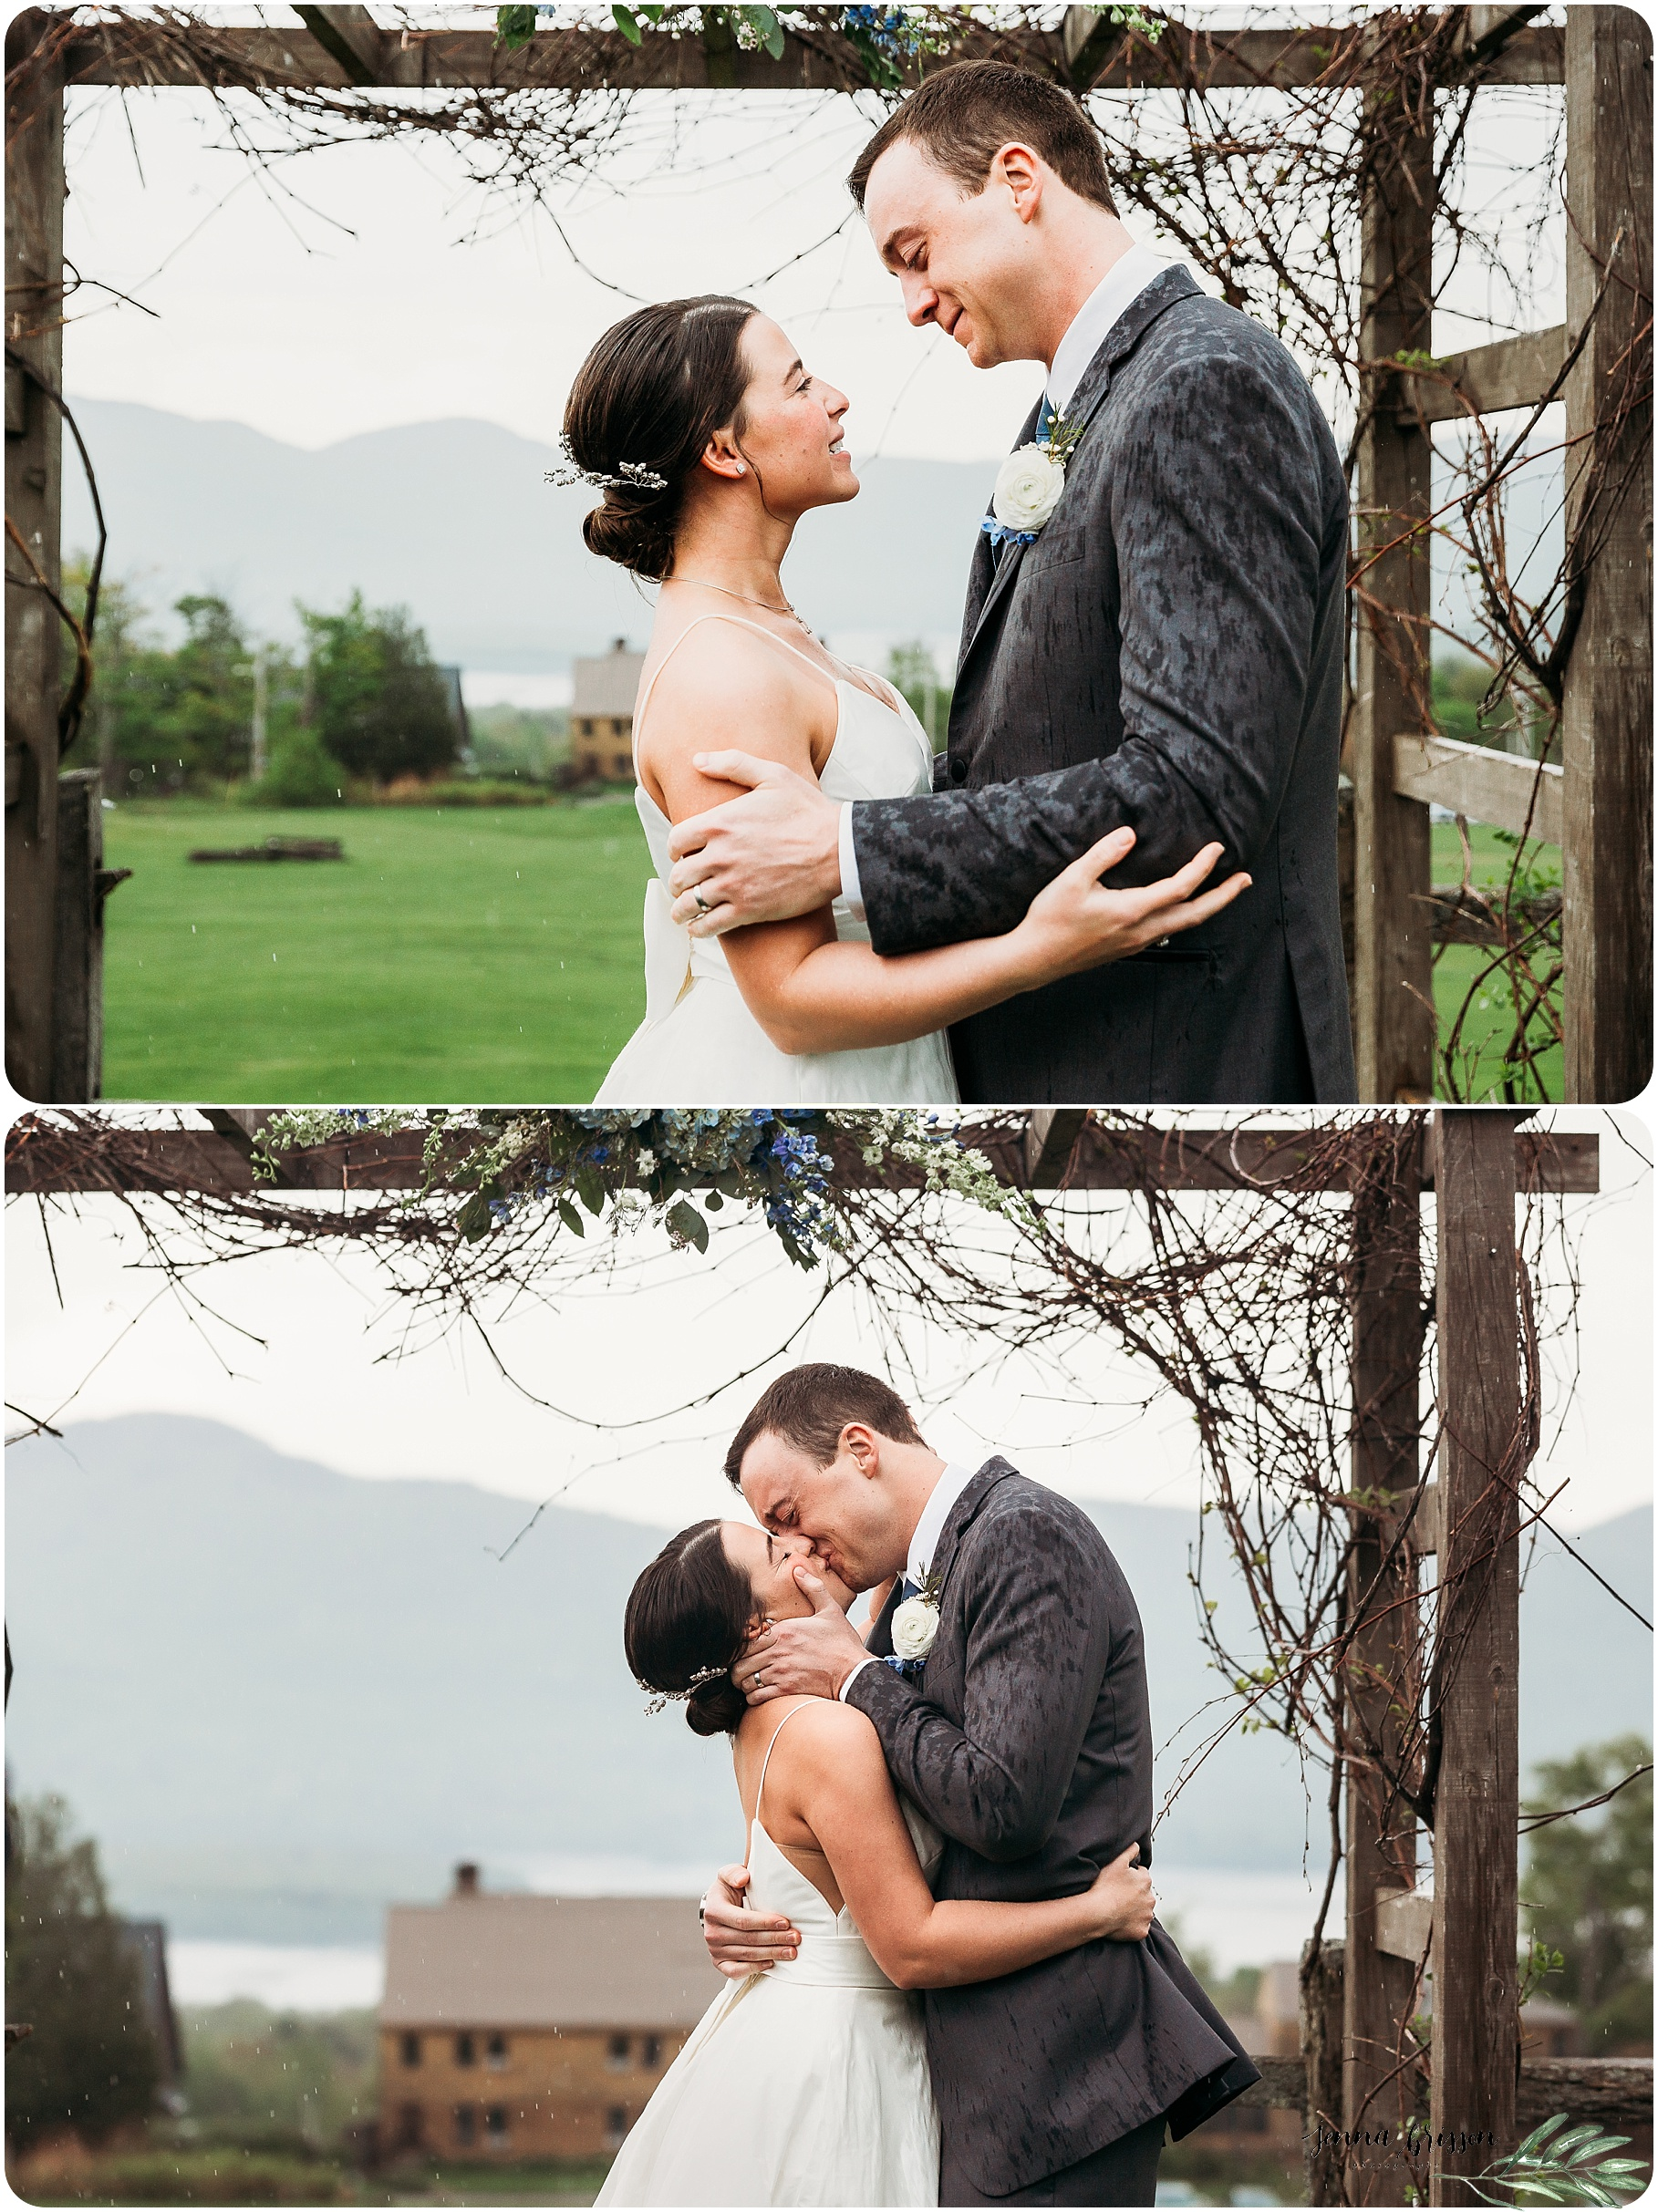 Vermont Weddings - Jenna Brisson Photography